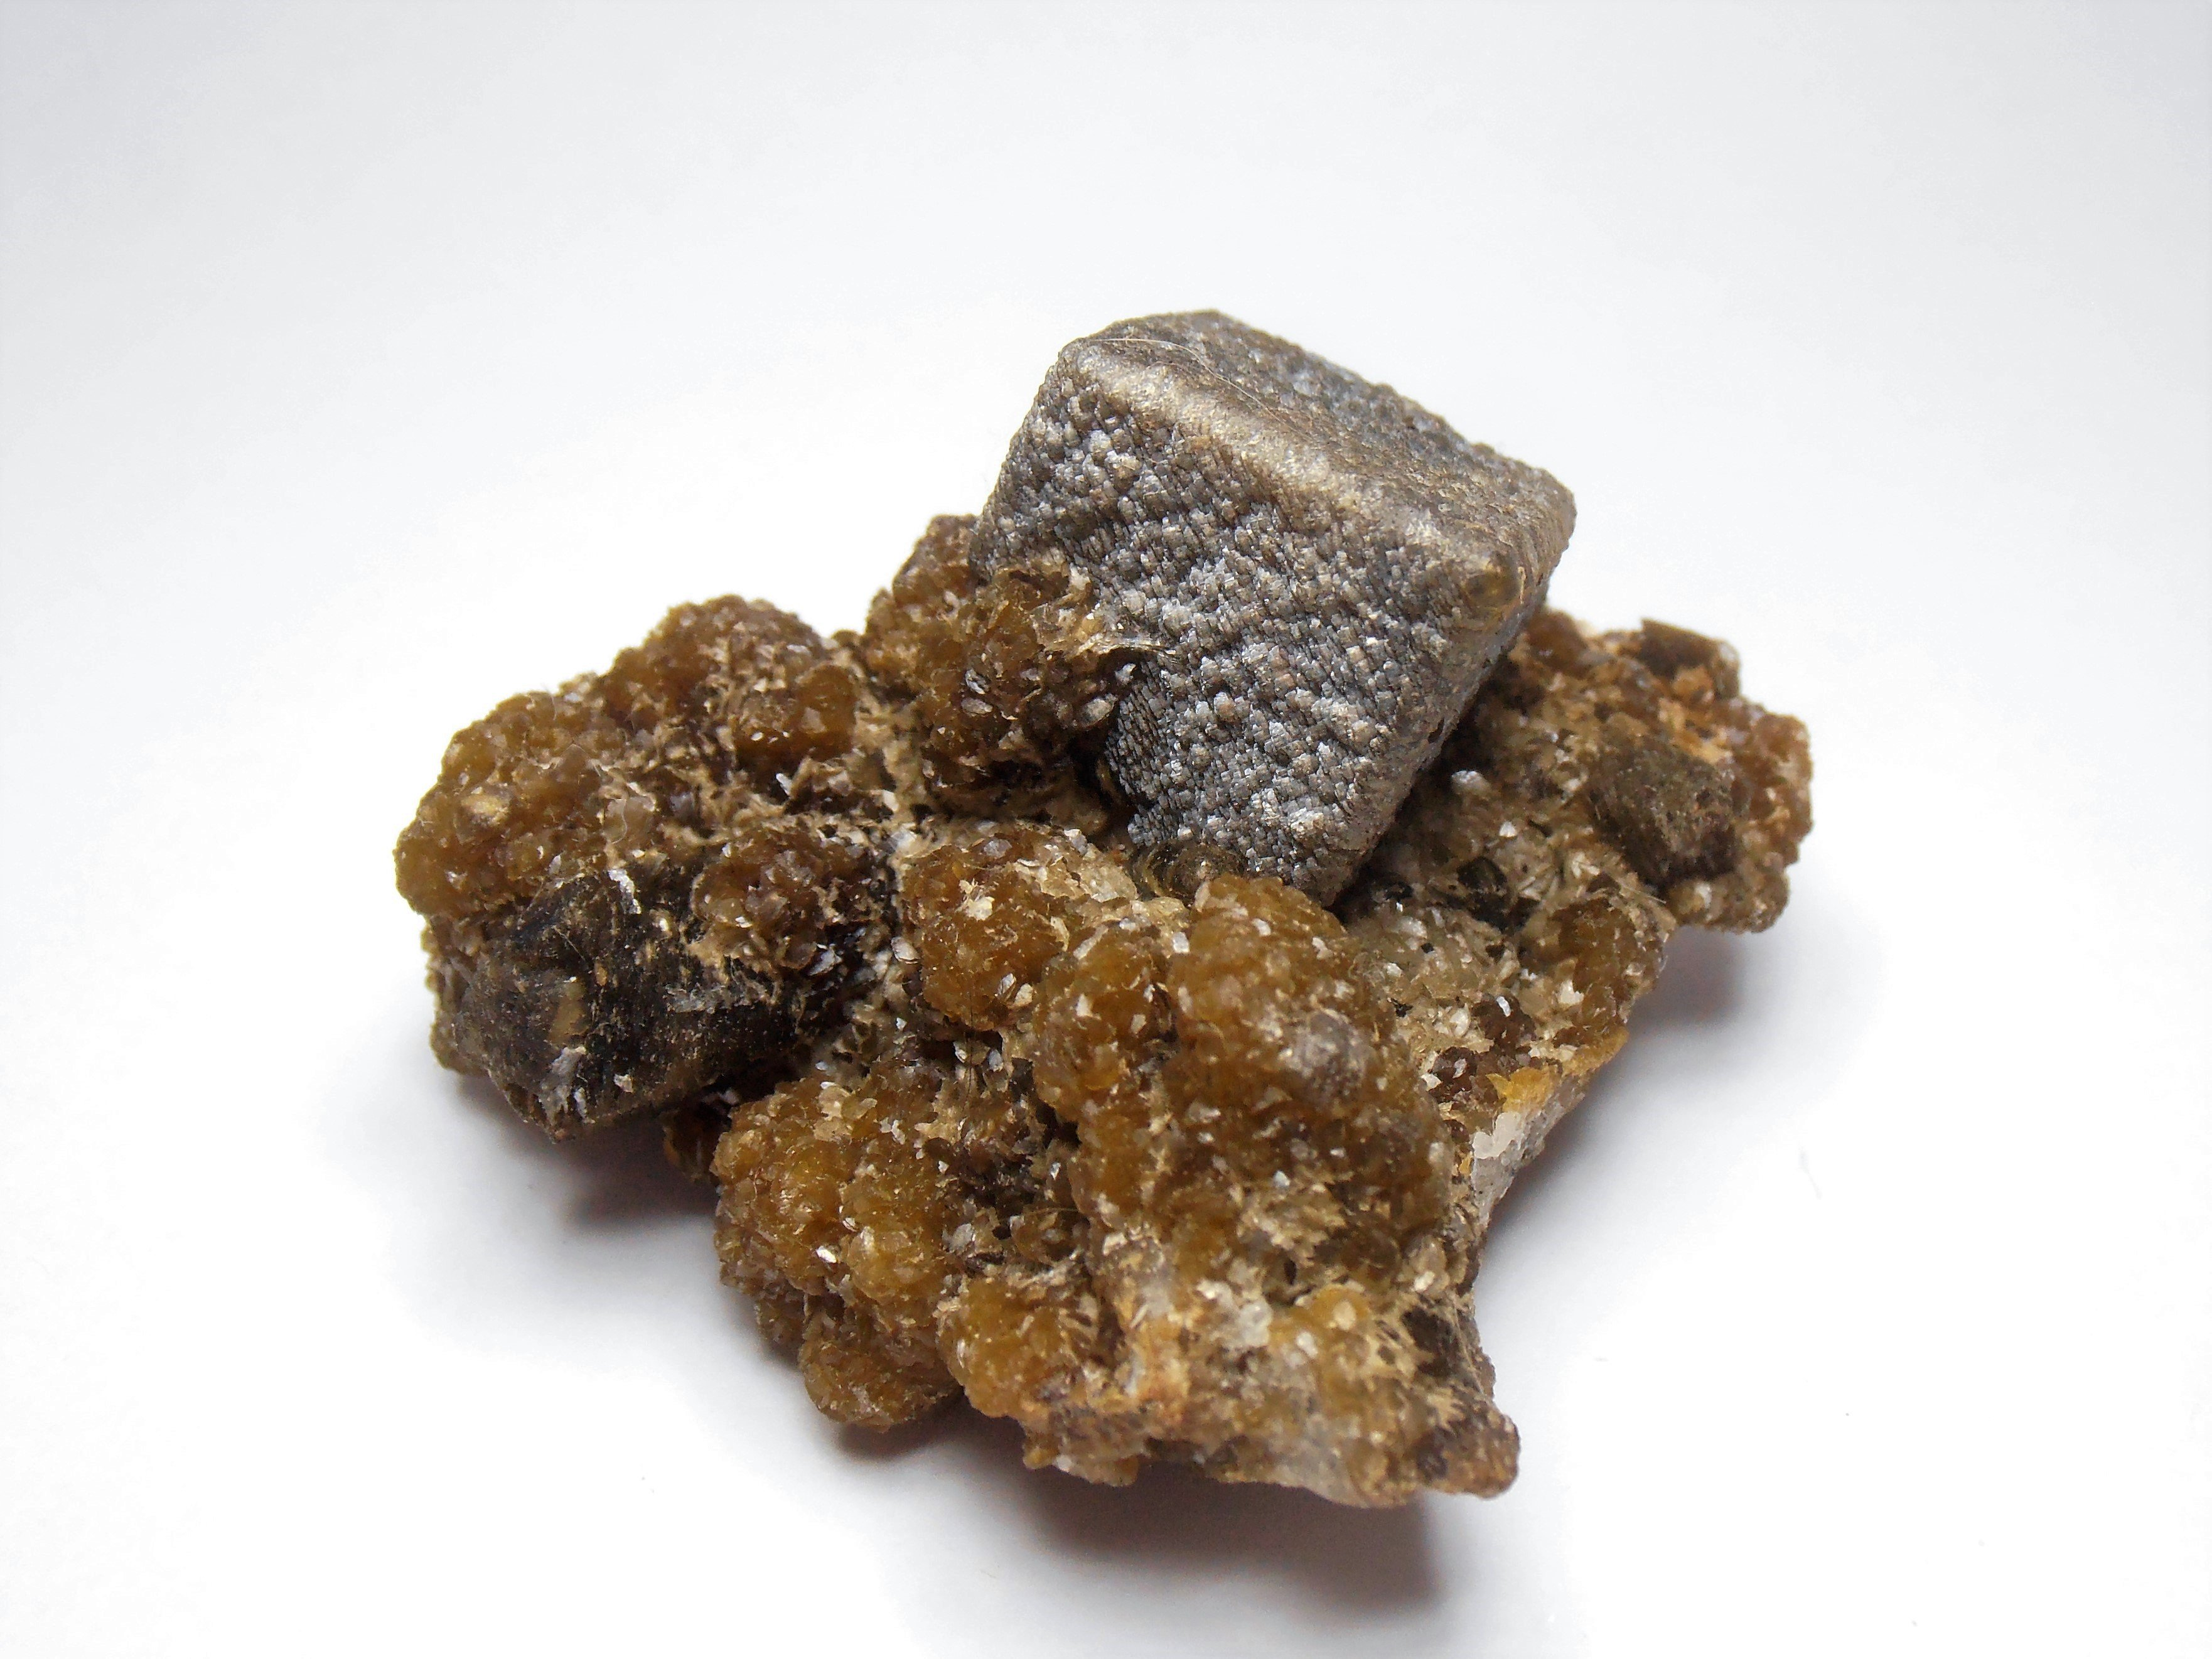 Siderite - Chatoyant Rhombic Crystals from the Julcani District